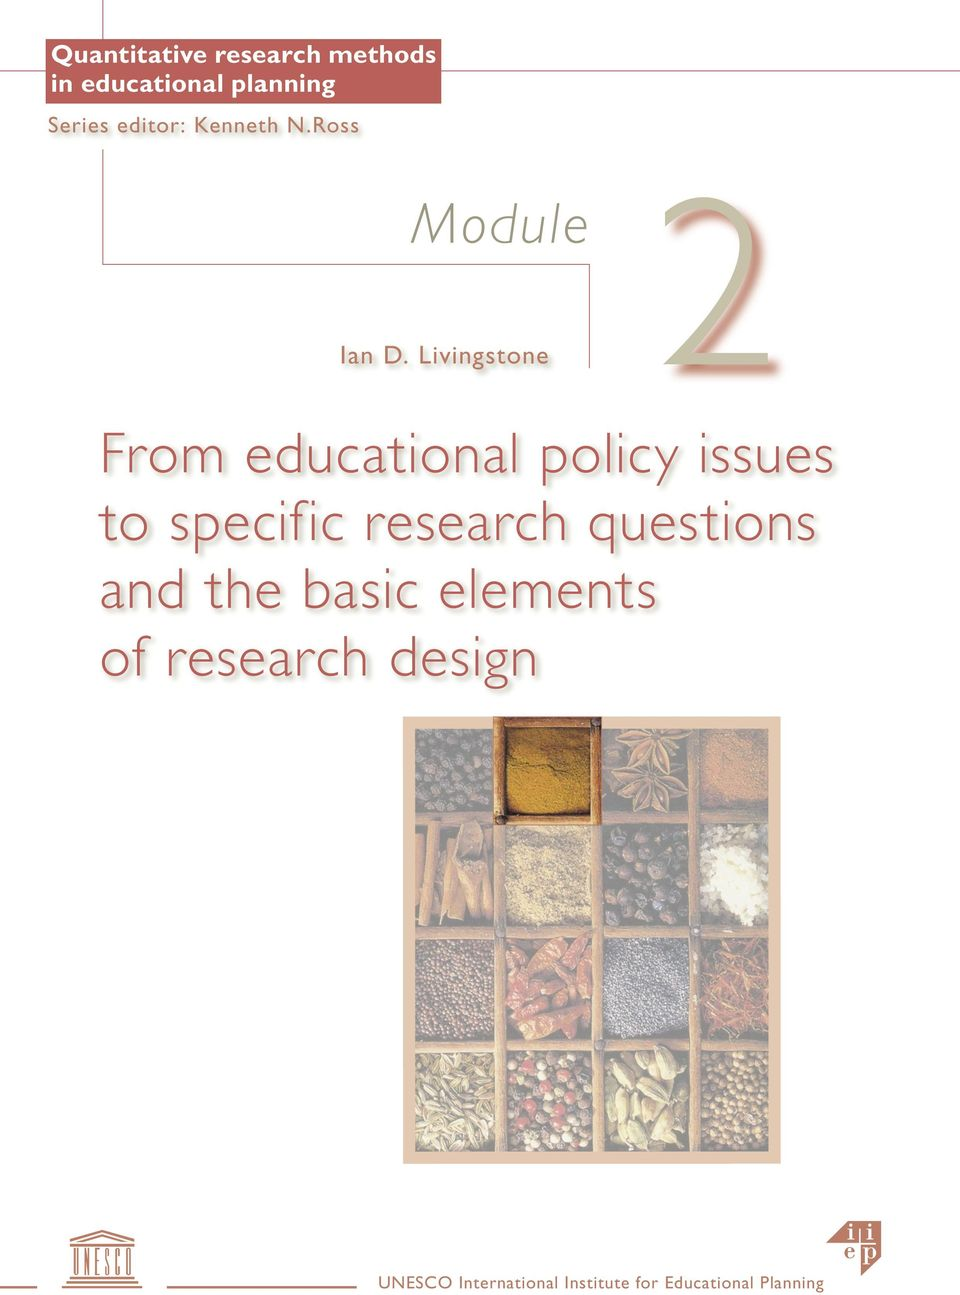 Livingstone 2 From educational policy issues to specific research